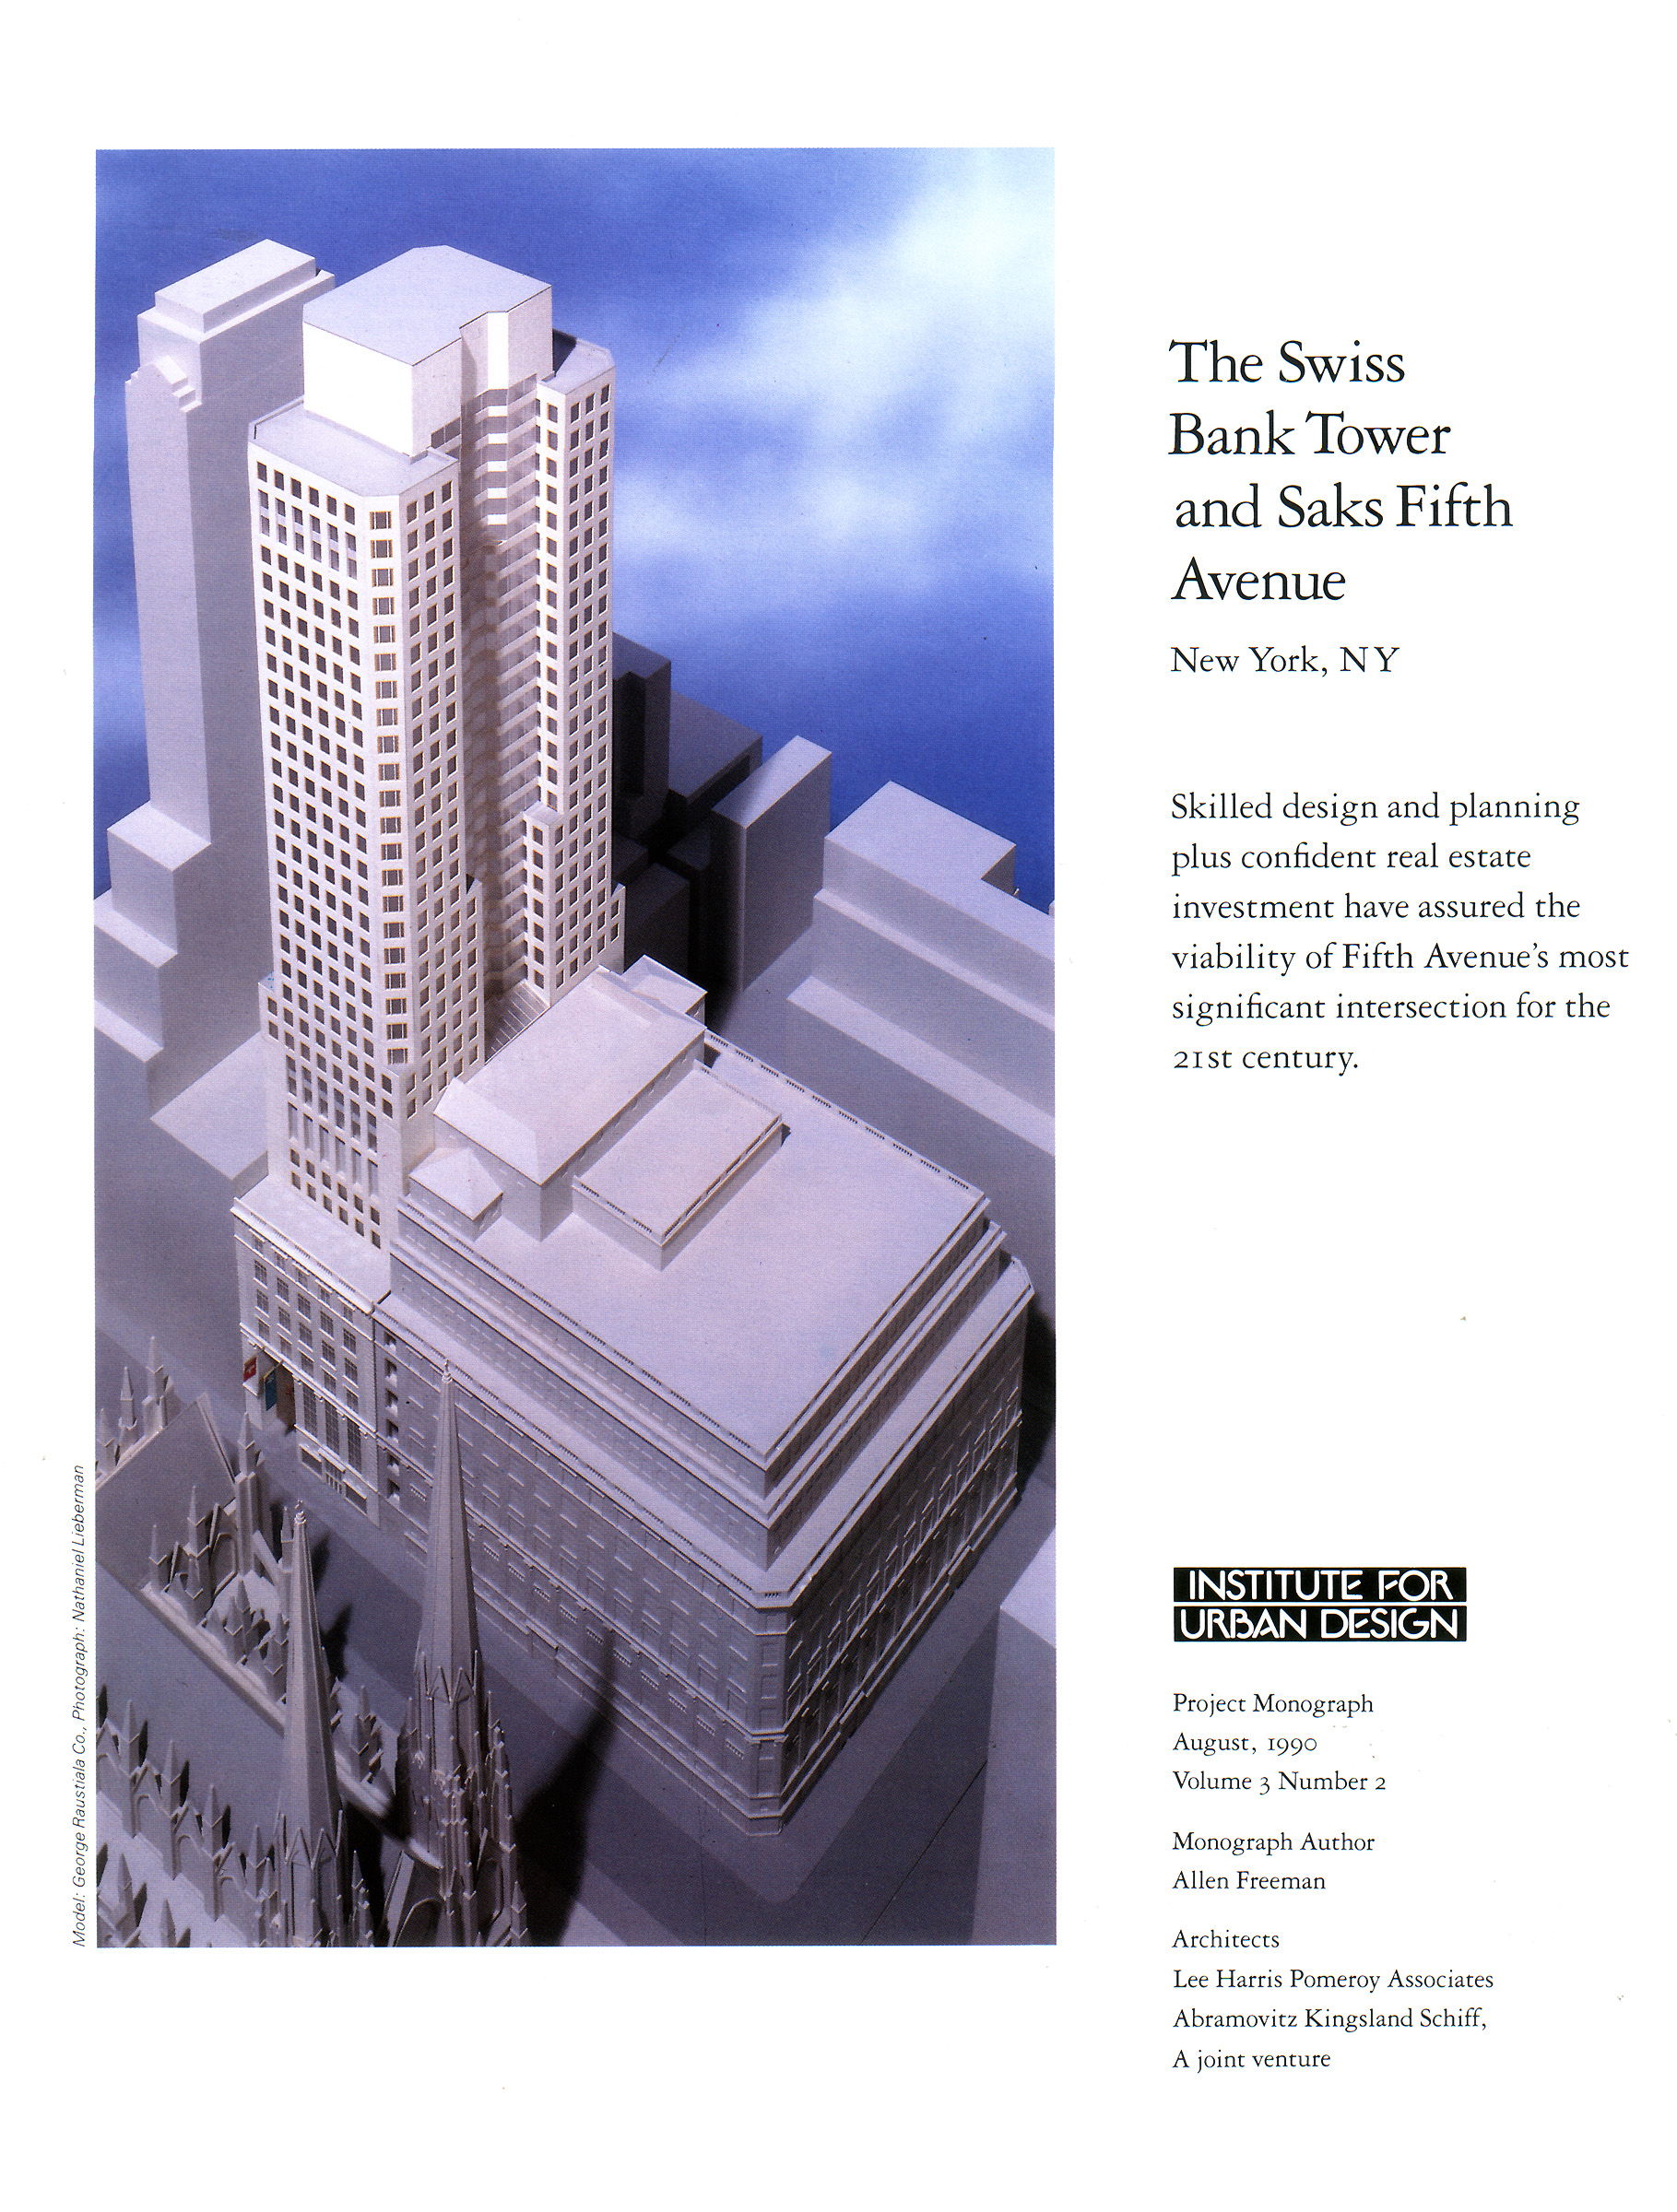 The Swiss Bank Tower and Saks Fifth Avenue